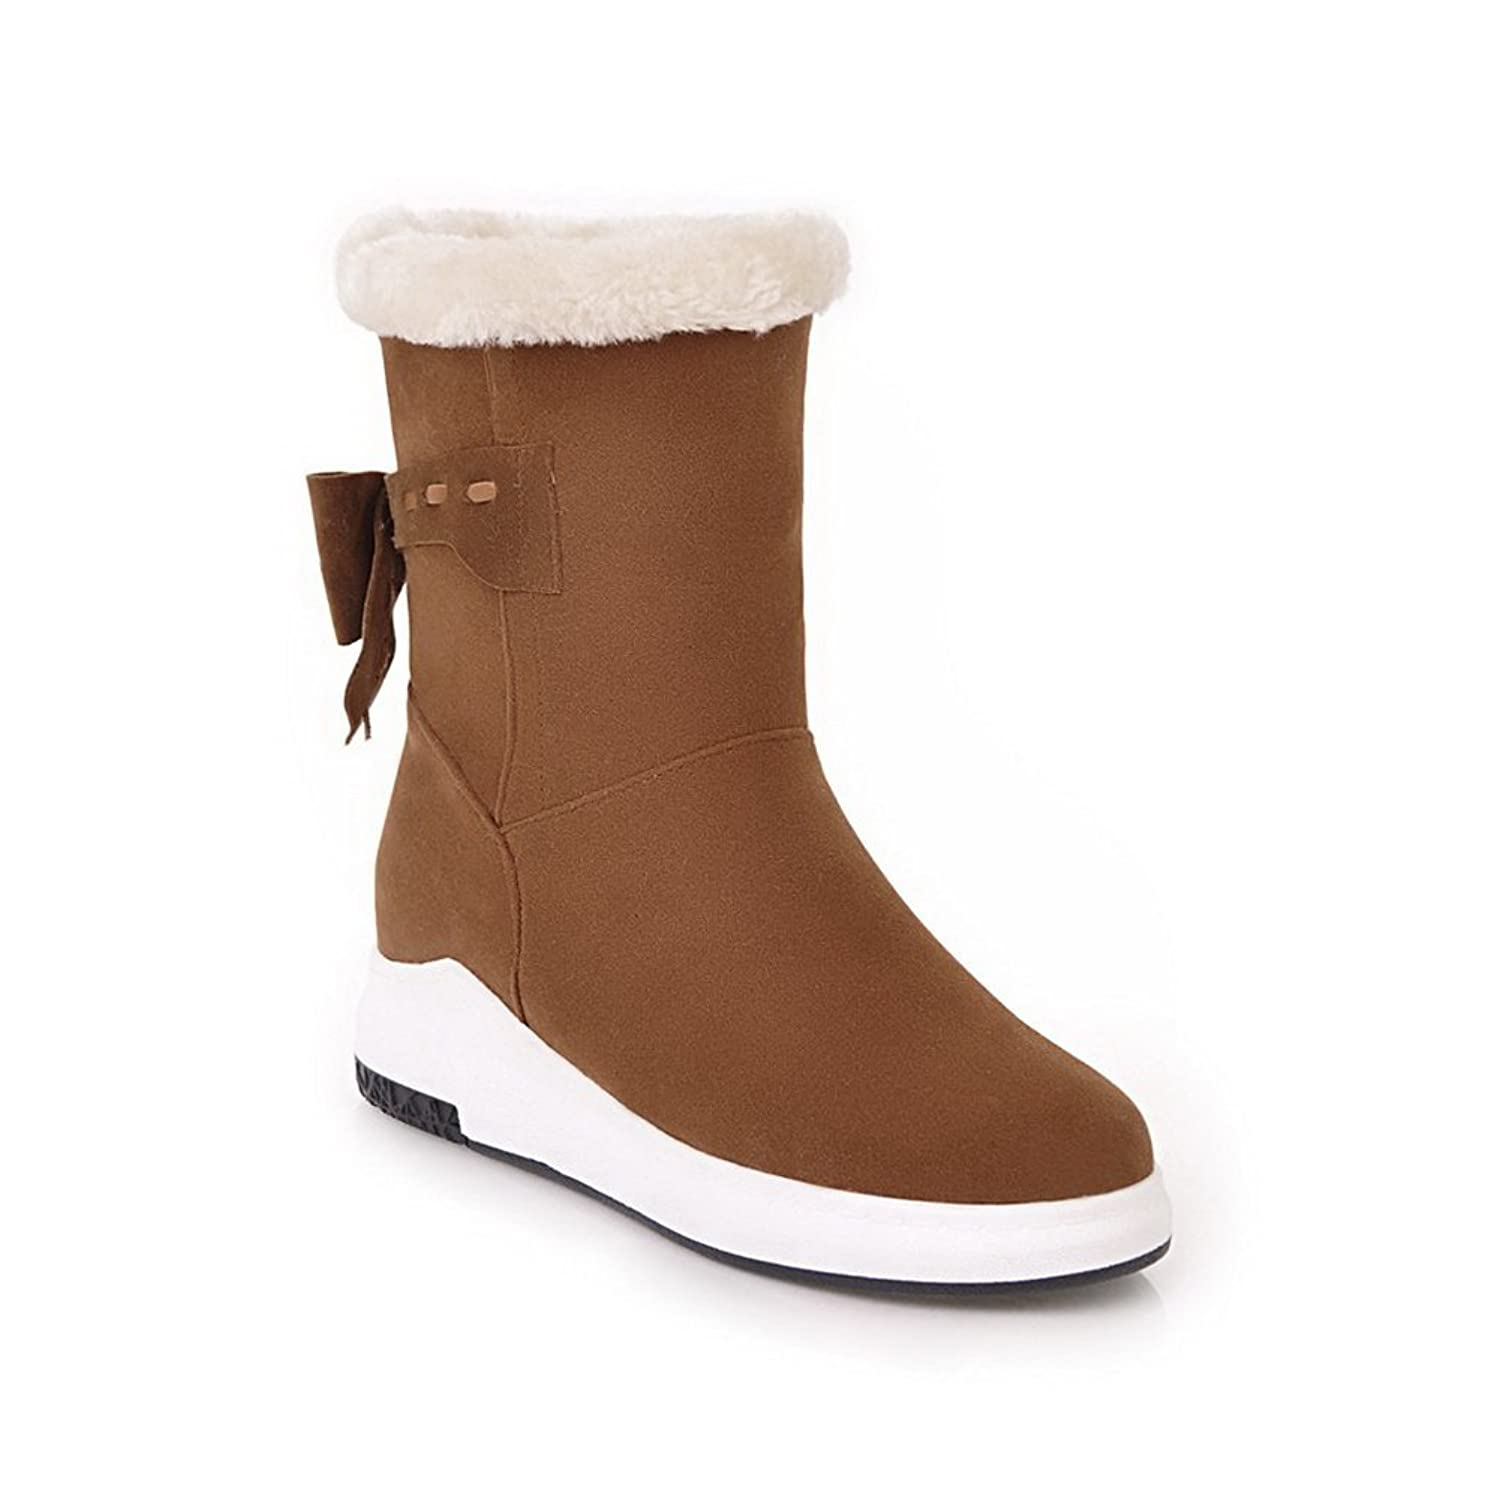 0d110a381d91 A N Womens Boots Snow Boots No-Closure No-Heel Water Resistant Comfort  Microfiber Smooth Leather Soft-Toe Urethane Boots DKU01686